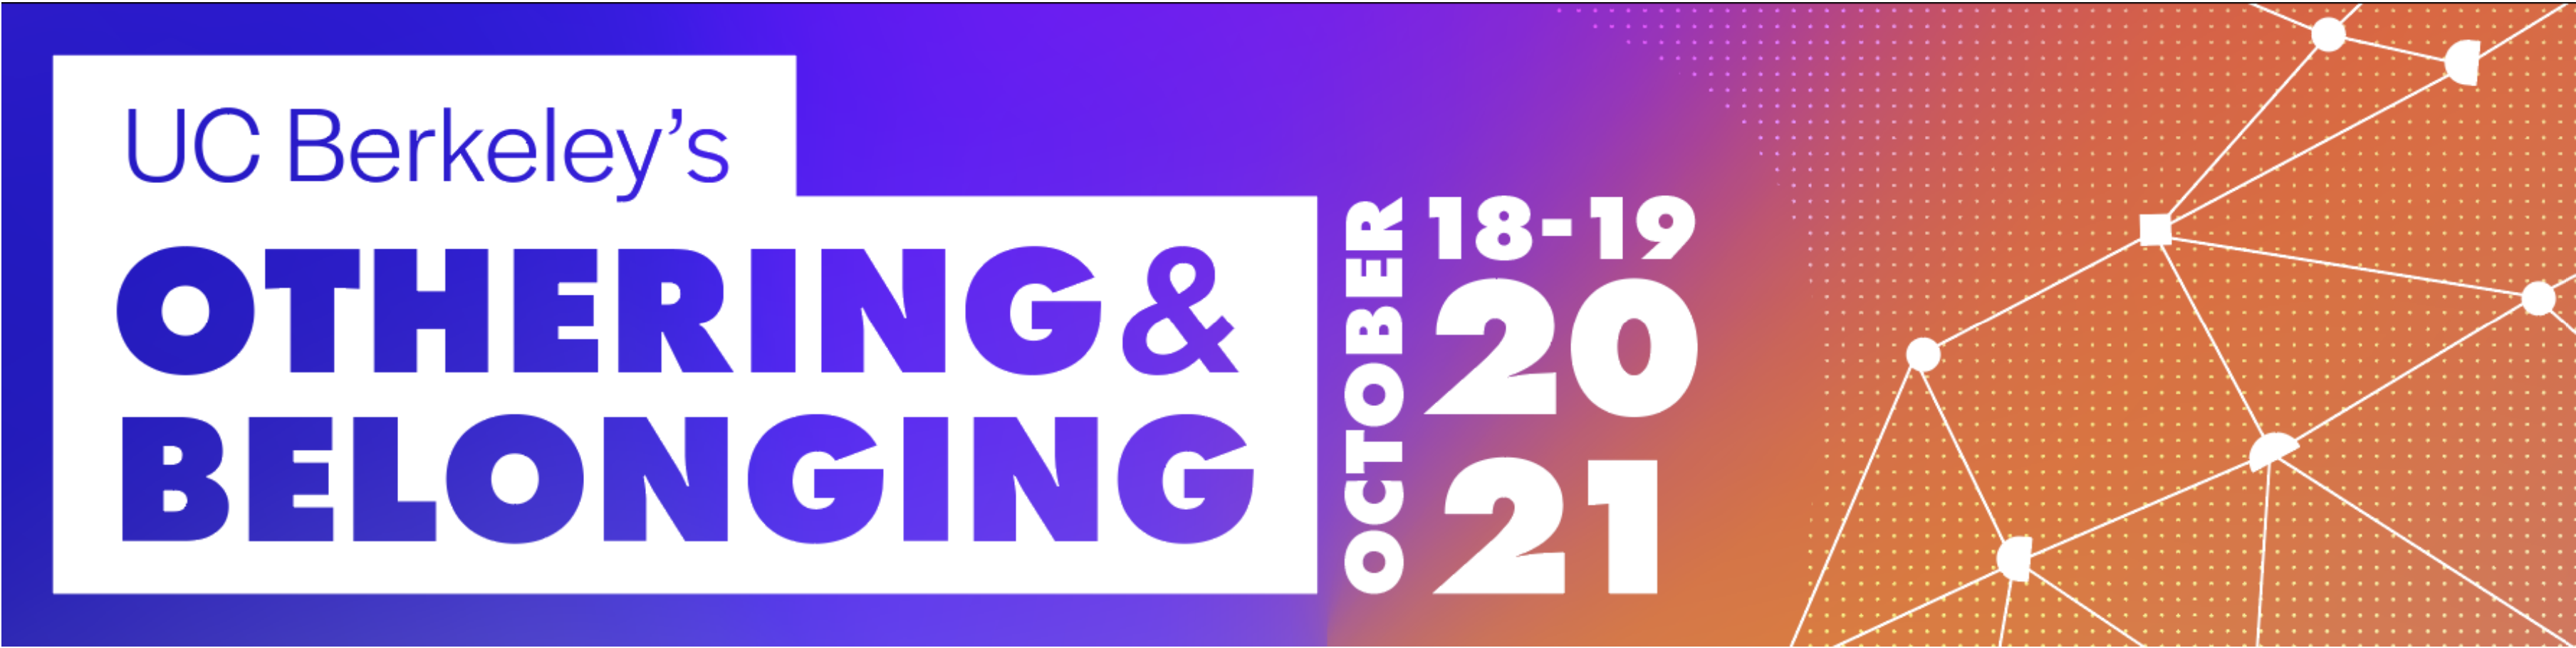 promo card for the 2021 othering and belonging conference